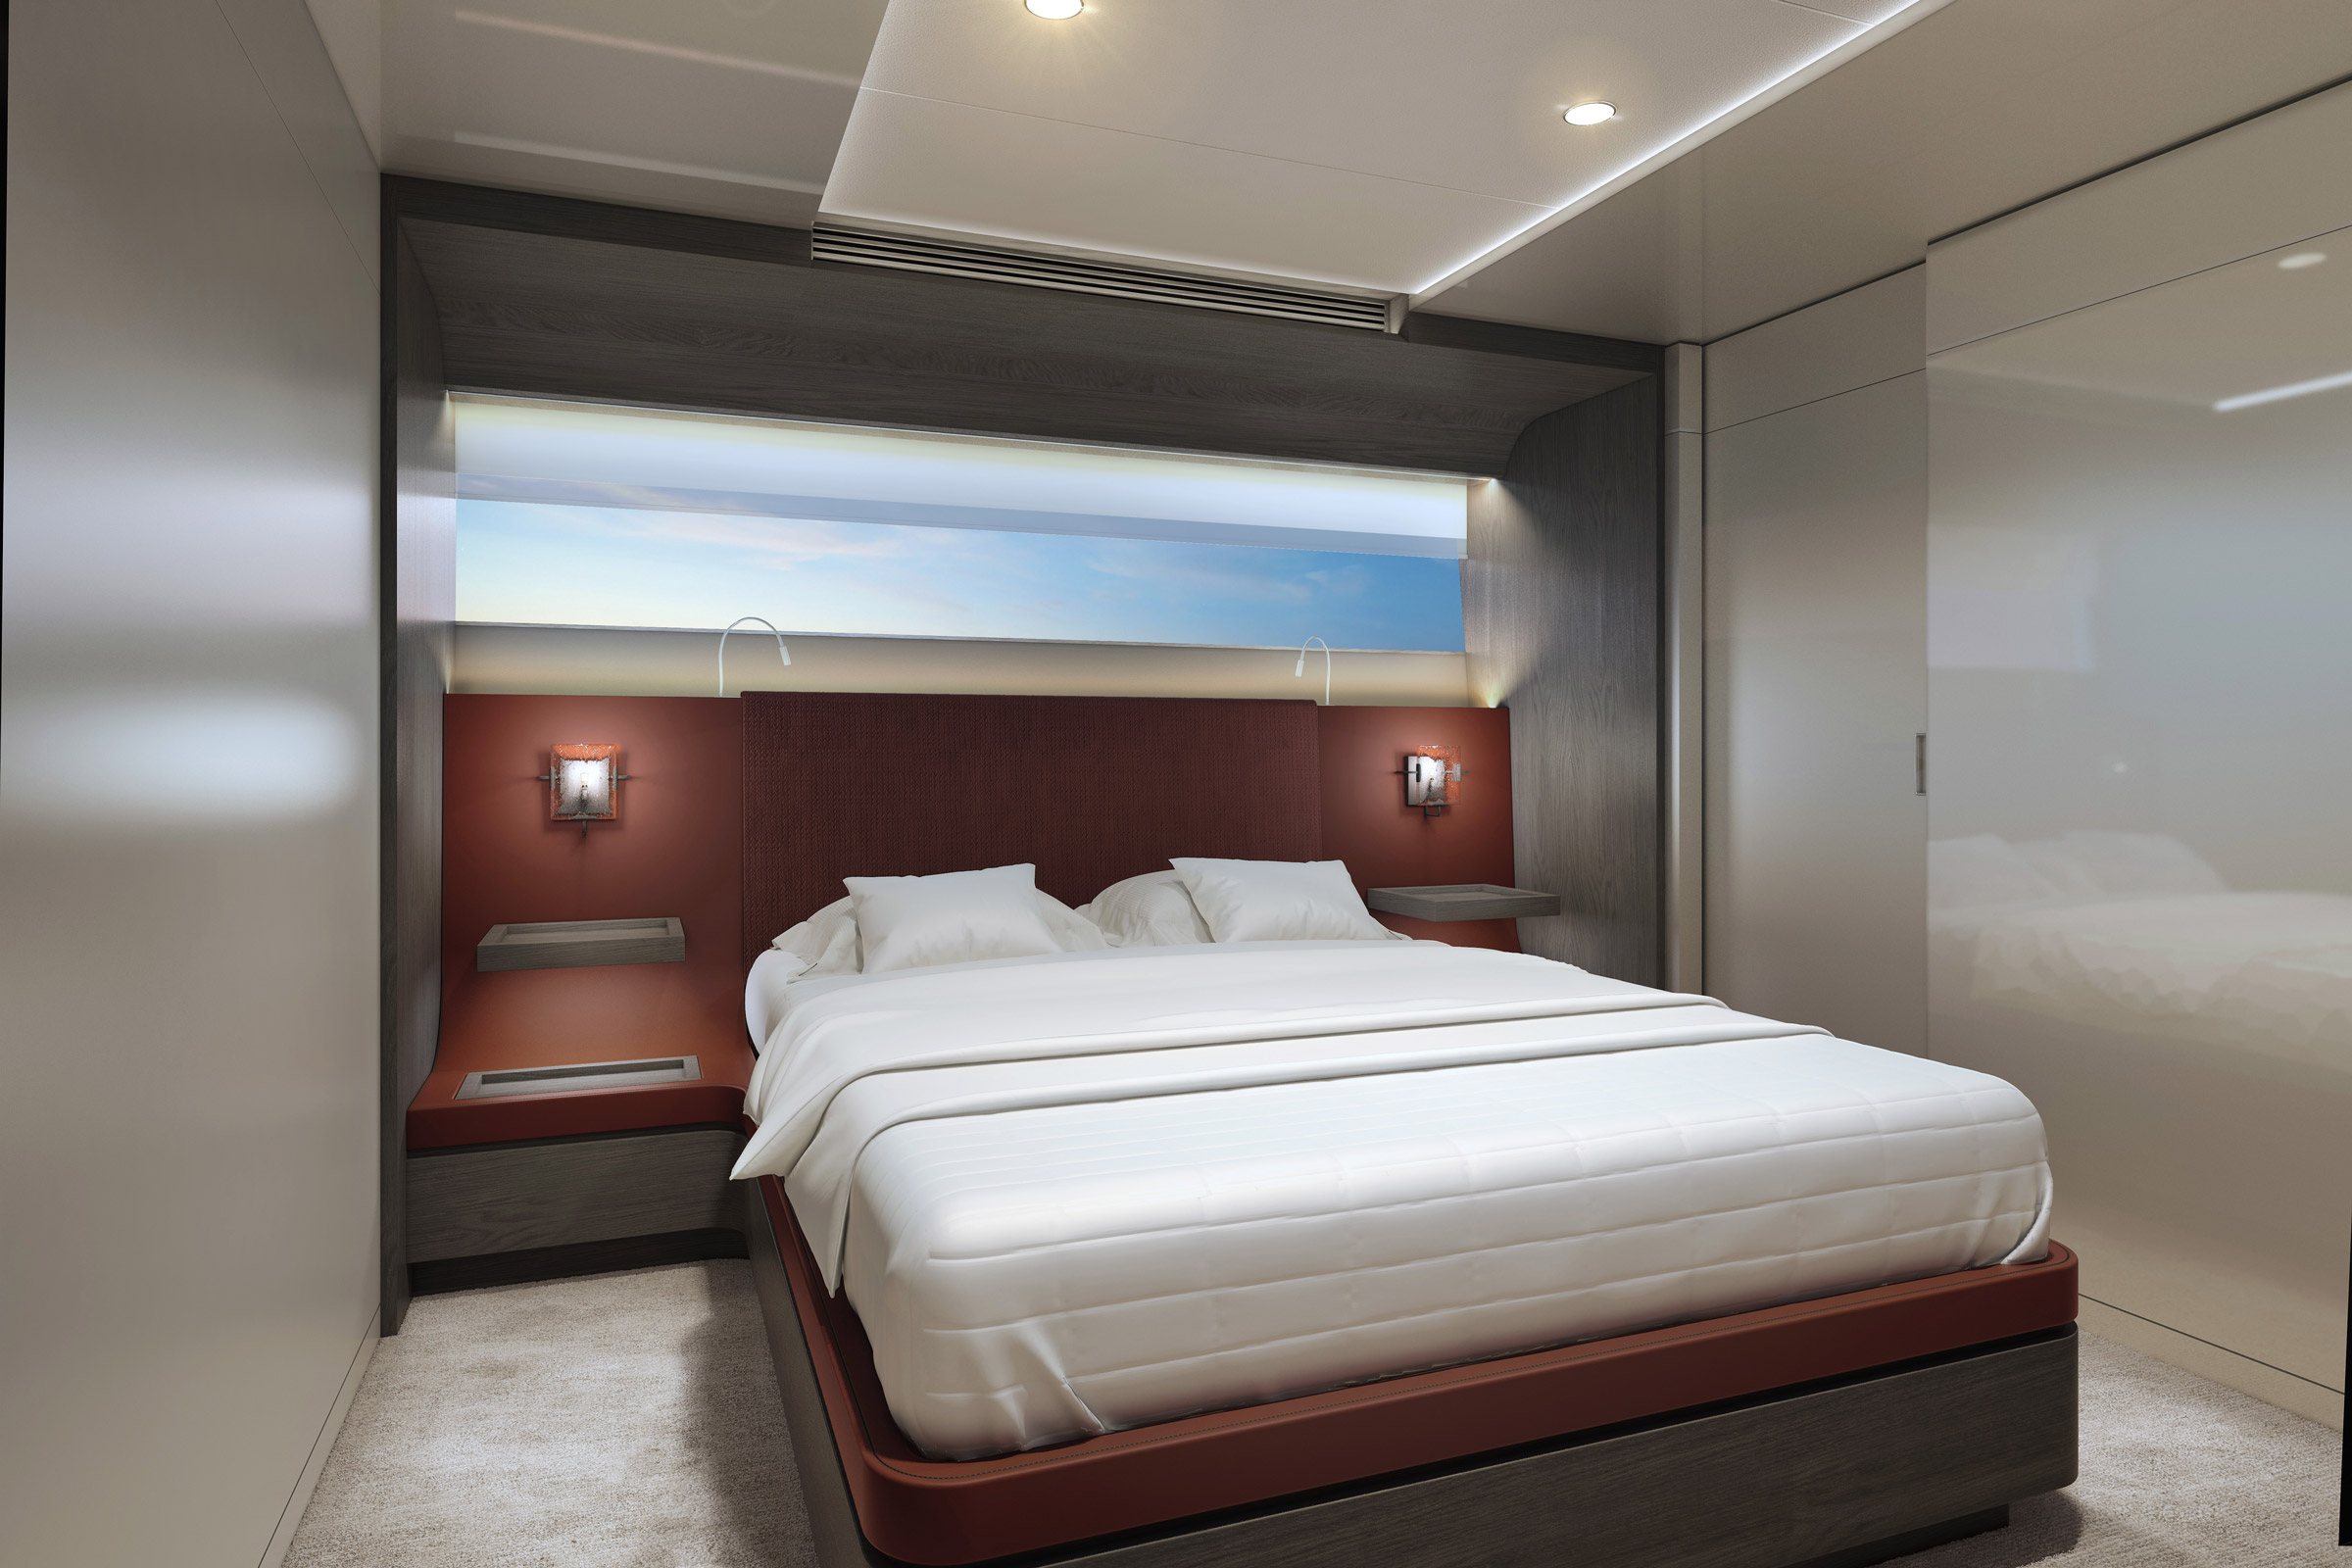 HH_Yacht_Guest_Bedroom_Cam1_V1_002